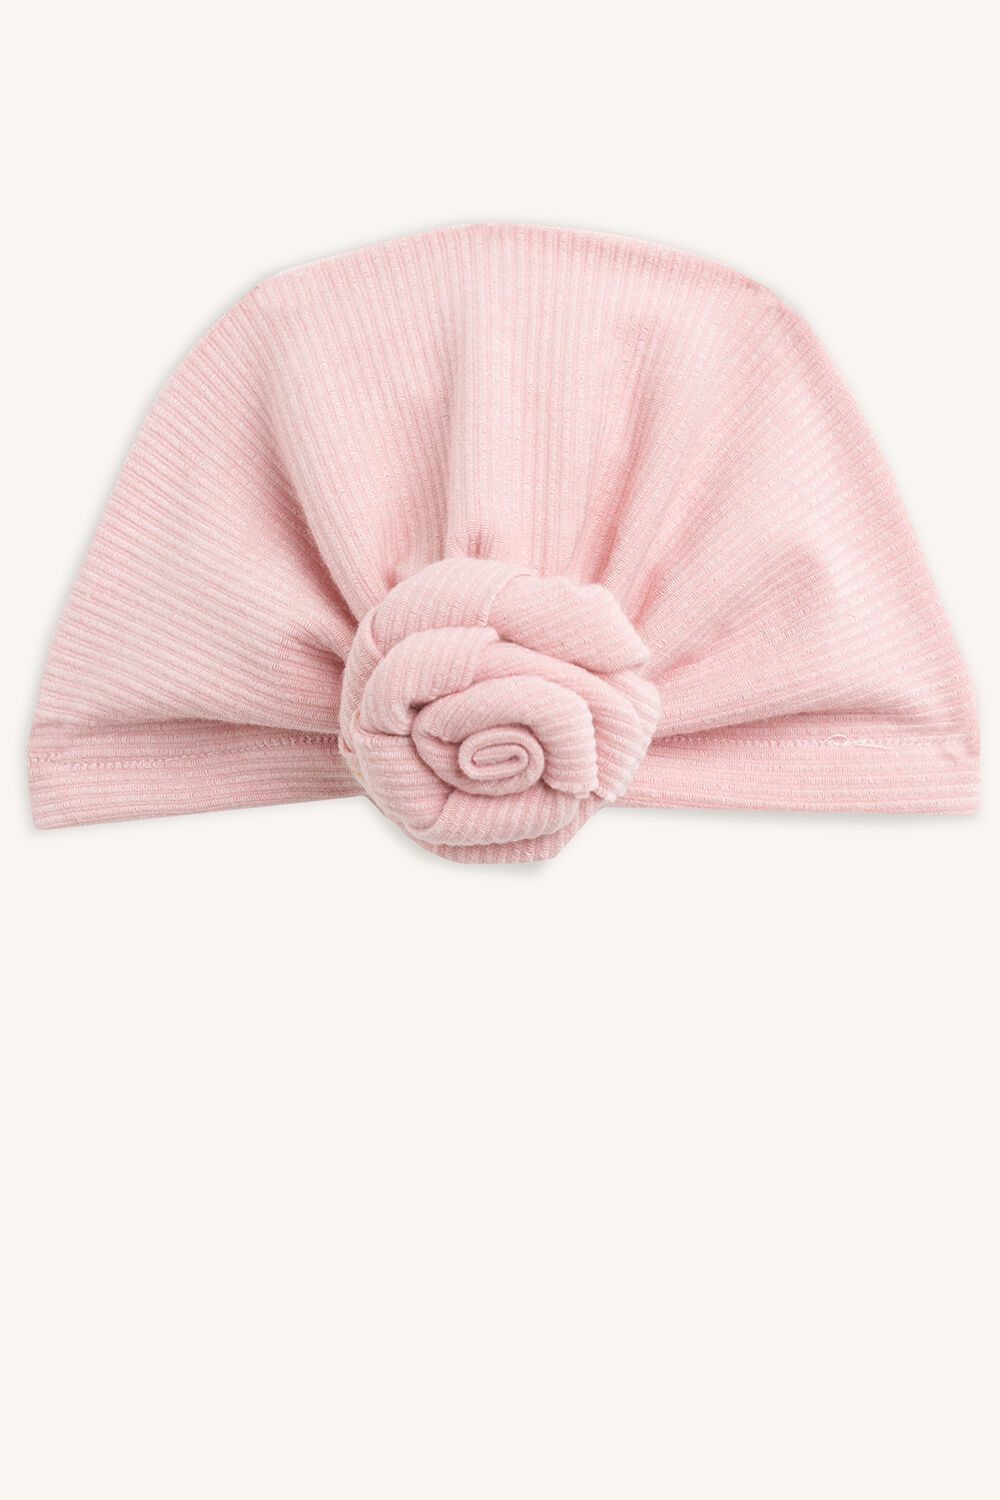 ROSETTE BABY HEADWRAP in colour BLUSHING BRIDE